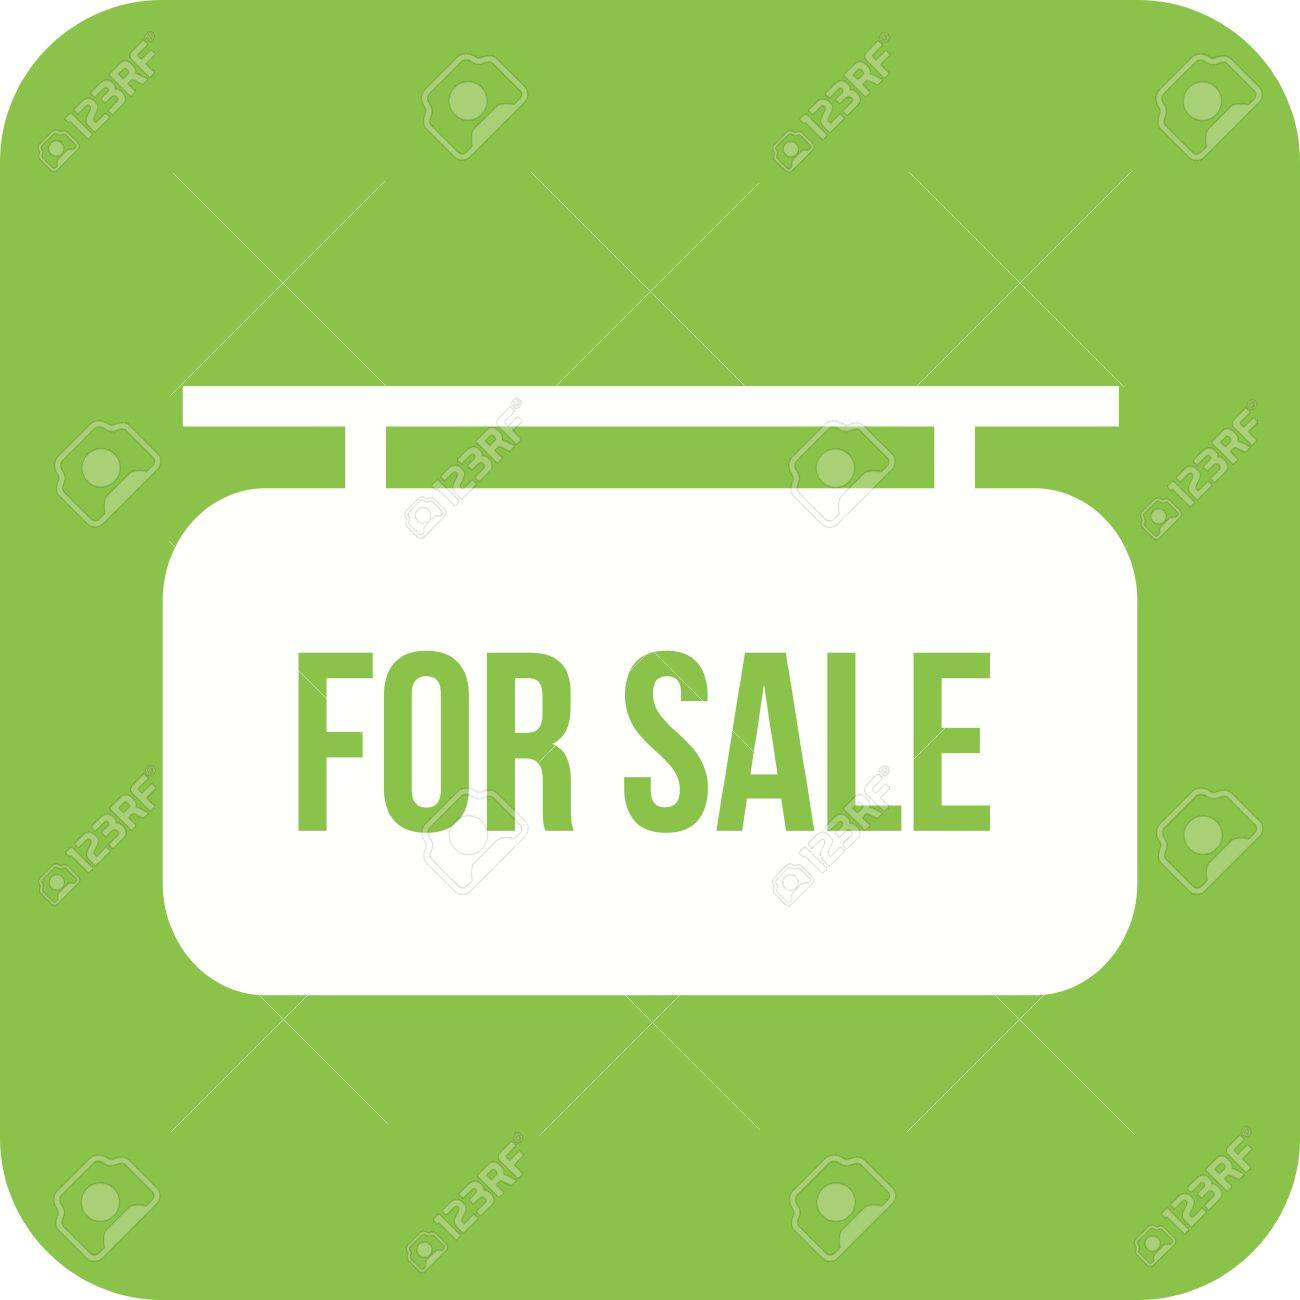 Home, Estate, Sale Icon Vector Image. Can Also Be Used For Real ...